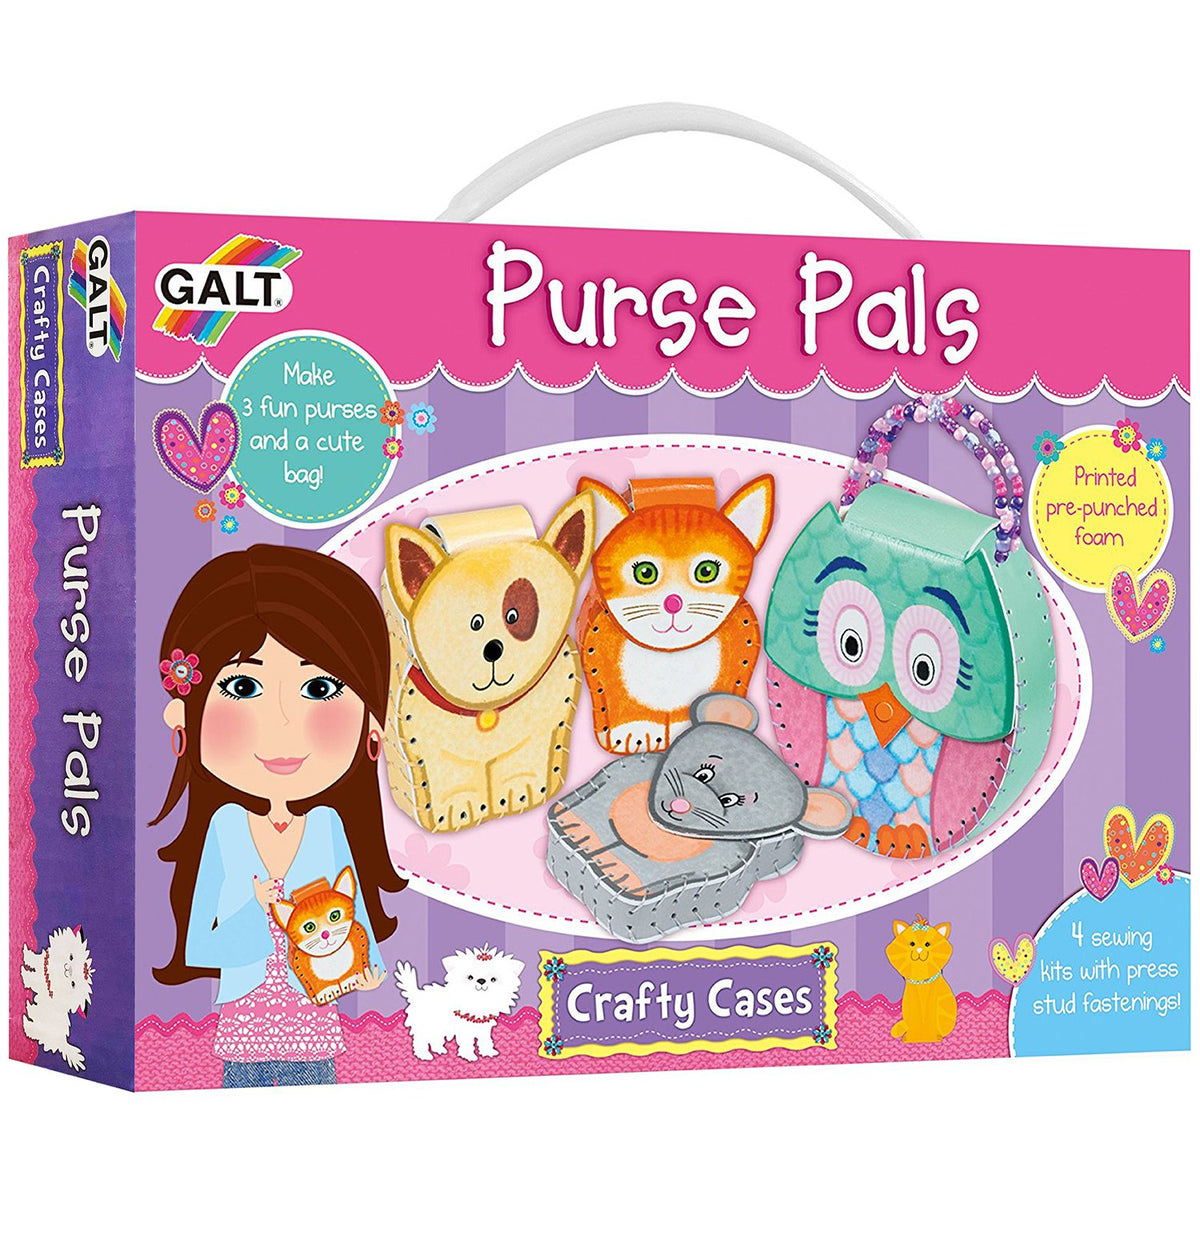 Purse Pals - Galt